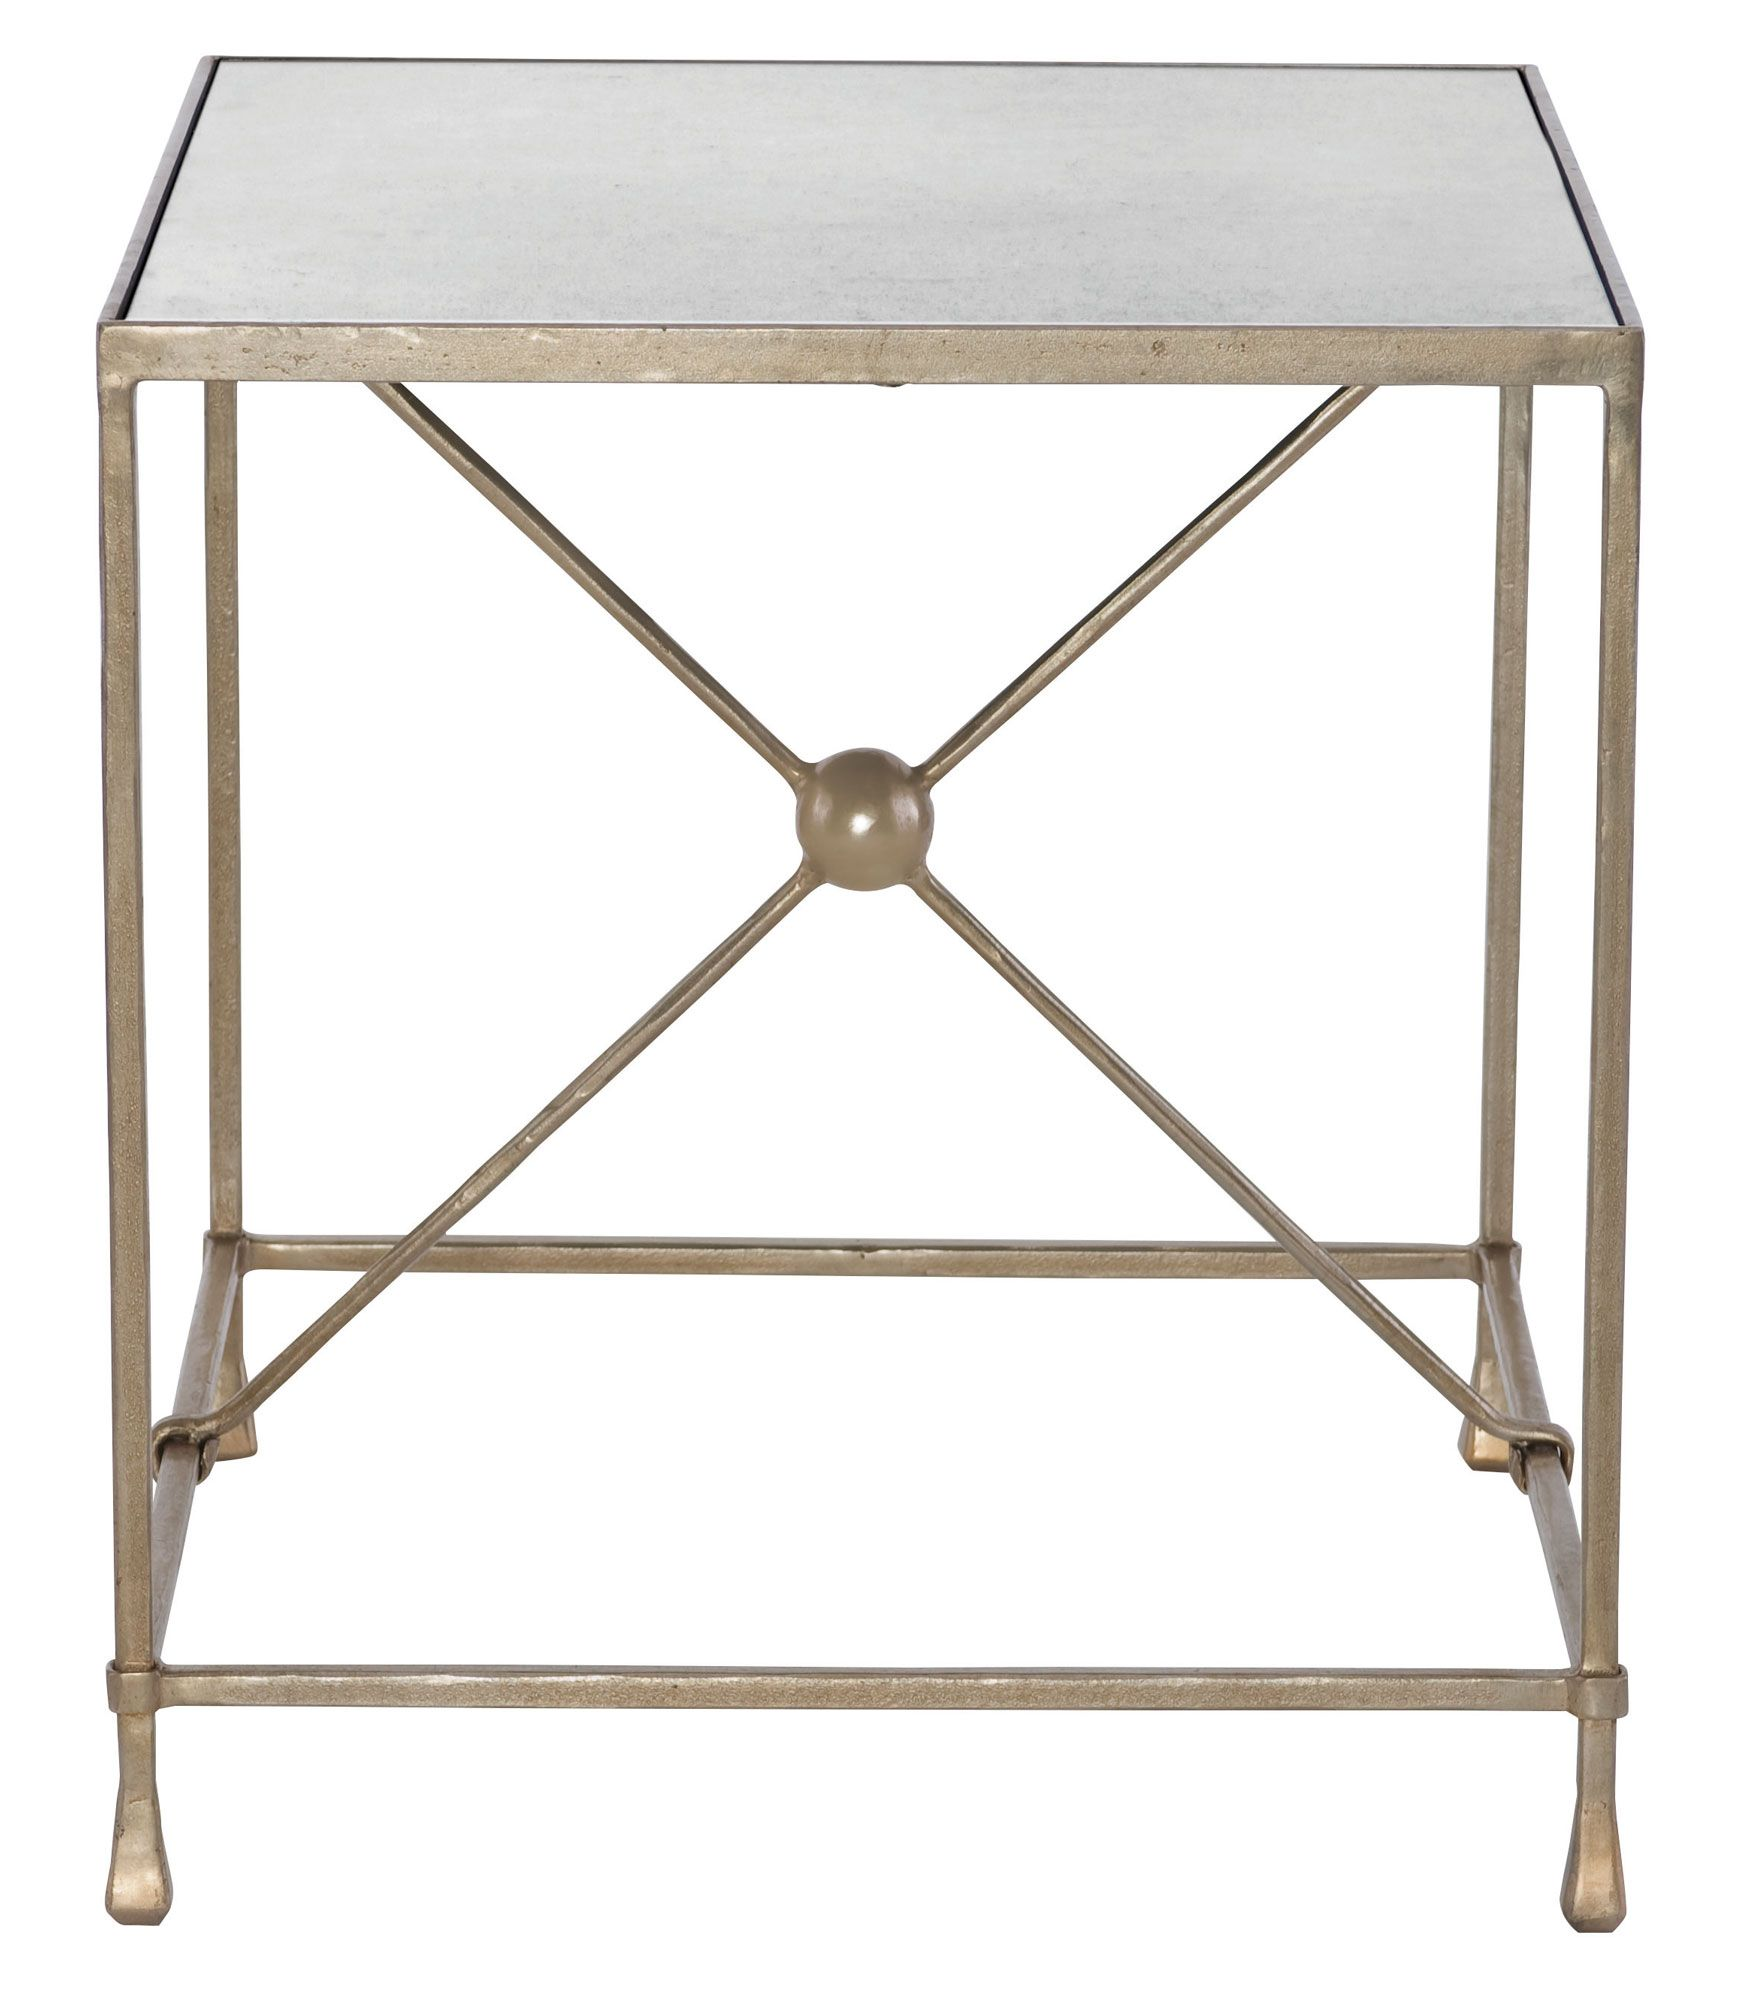 561 122 Rowley End Table Bernhardt W 24 5 D 28 H 26 Mirror Top